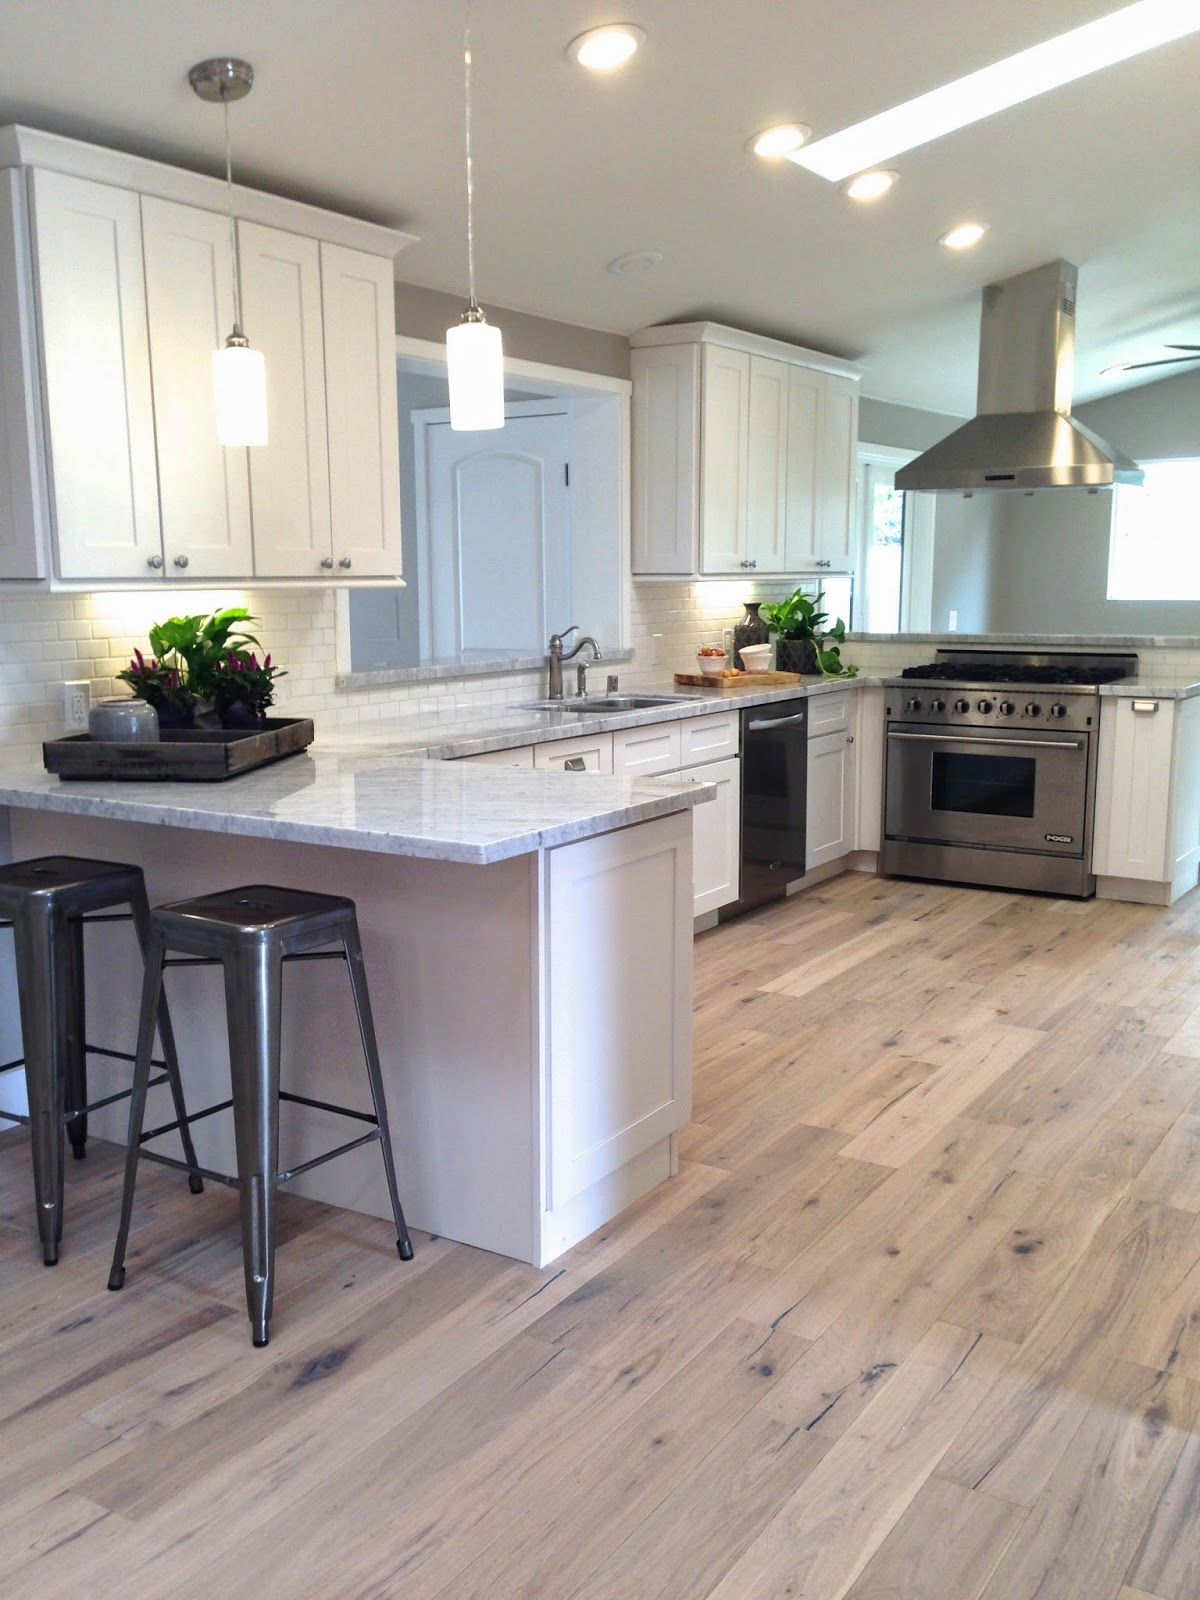 Best of 2014: Rossmoor house finished | Underfoot - Flooring Ideas ...